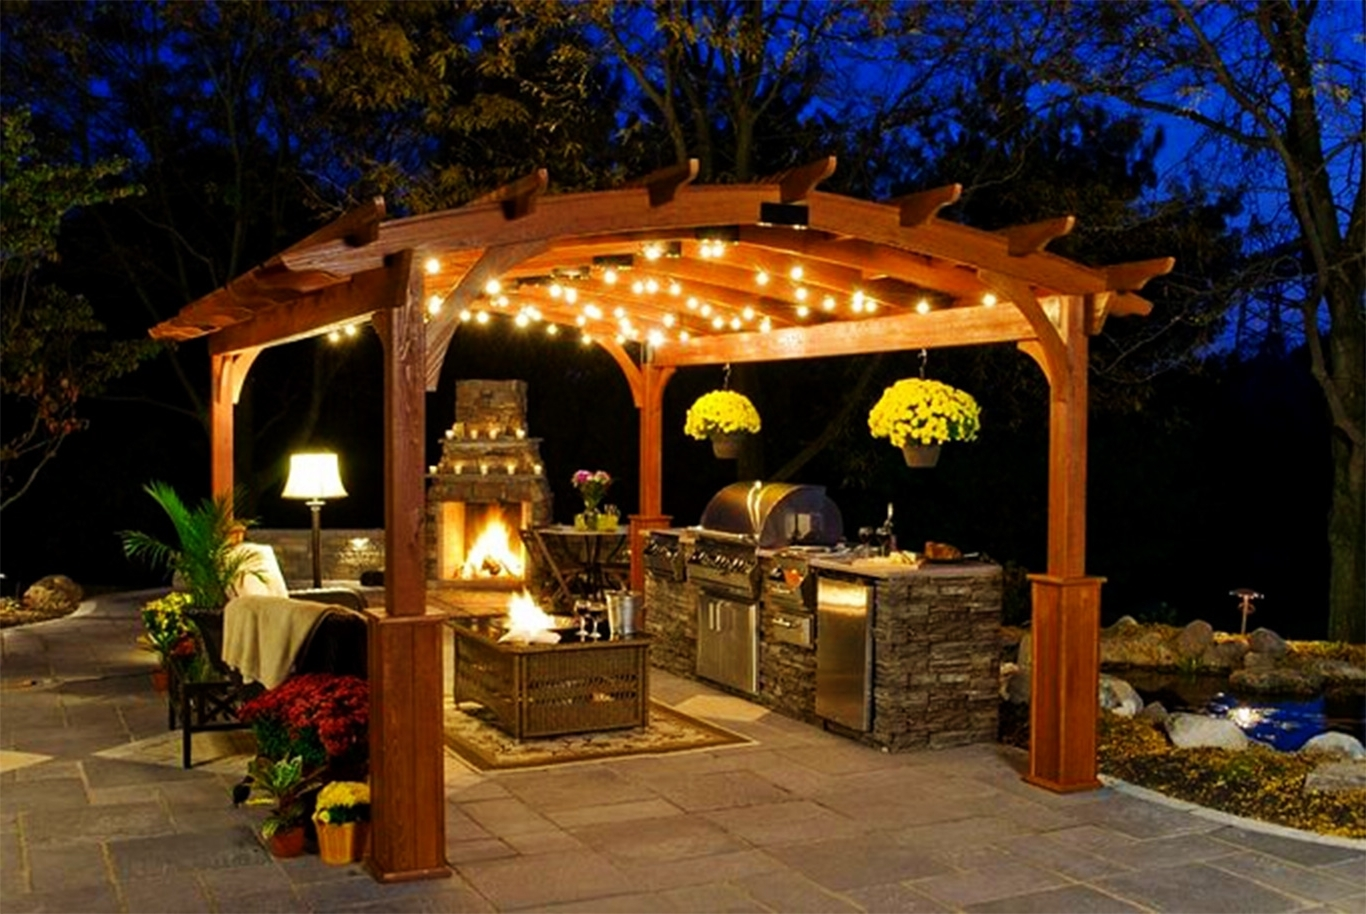 Outdoor Gazebo Lanterns Throughout Widely Used Modern Outdoor Pendant Lighting Copper Lantern Ceiling Fans With (View 5 of 20)